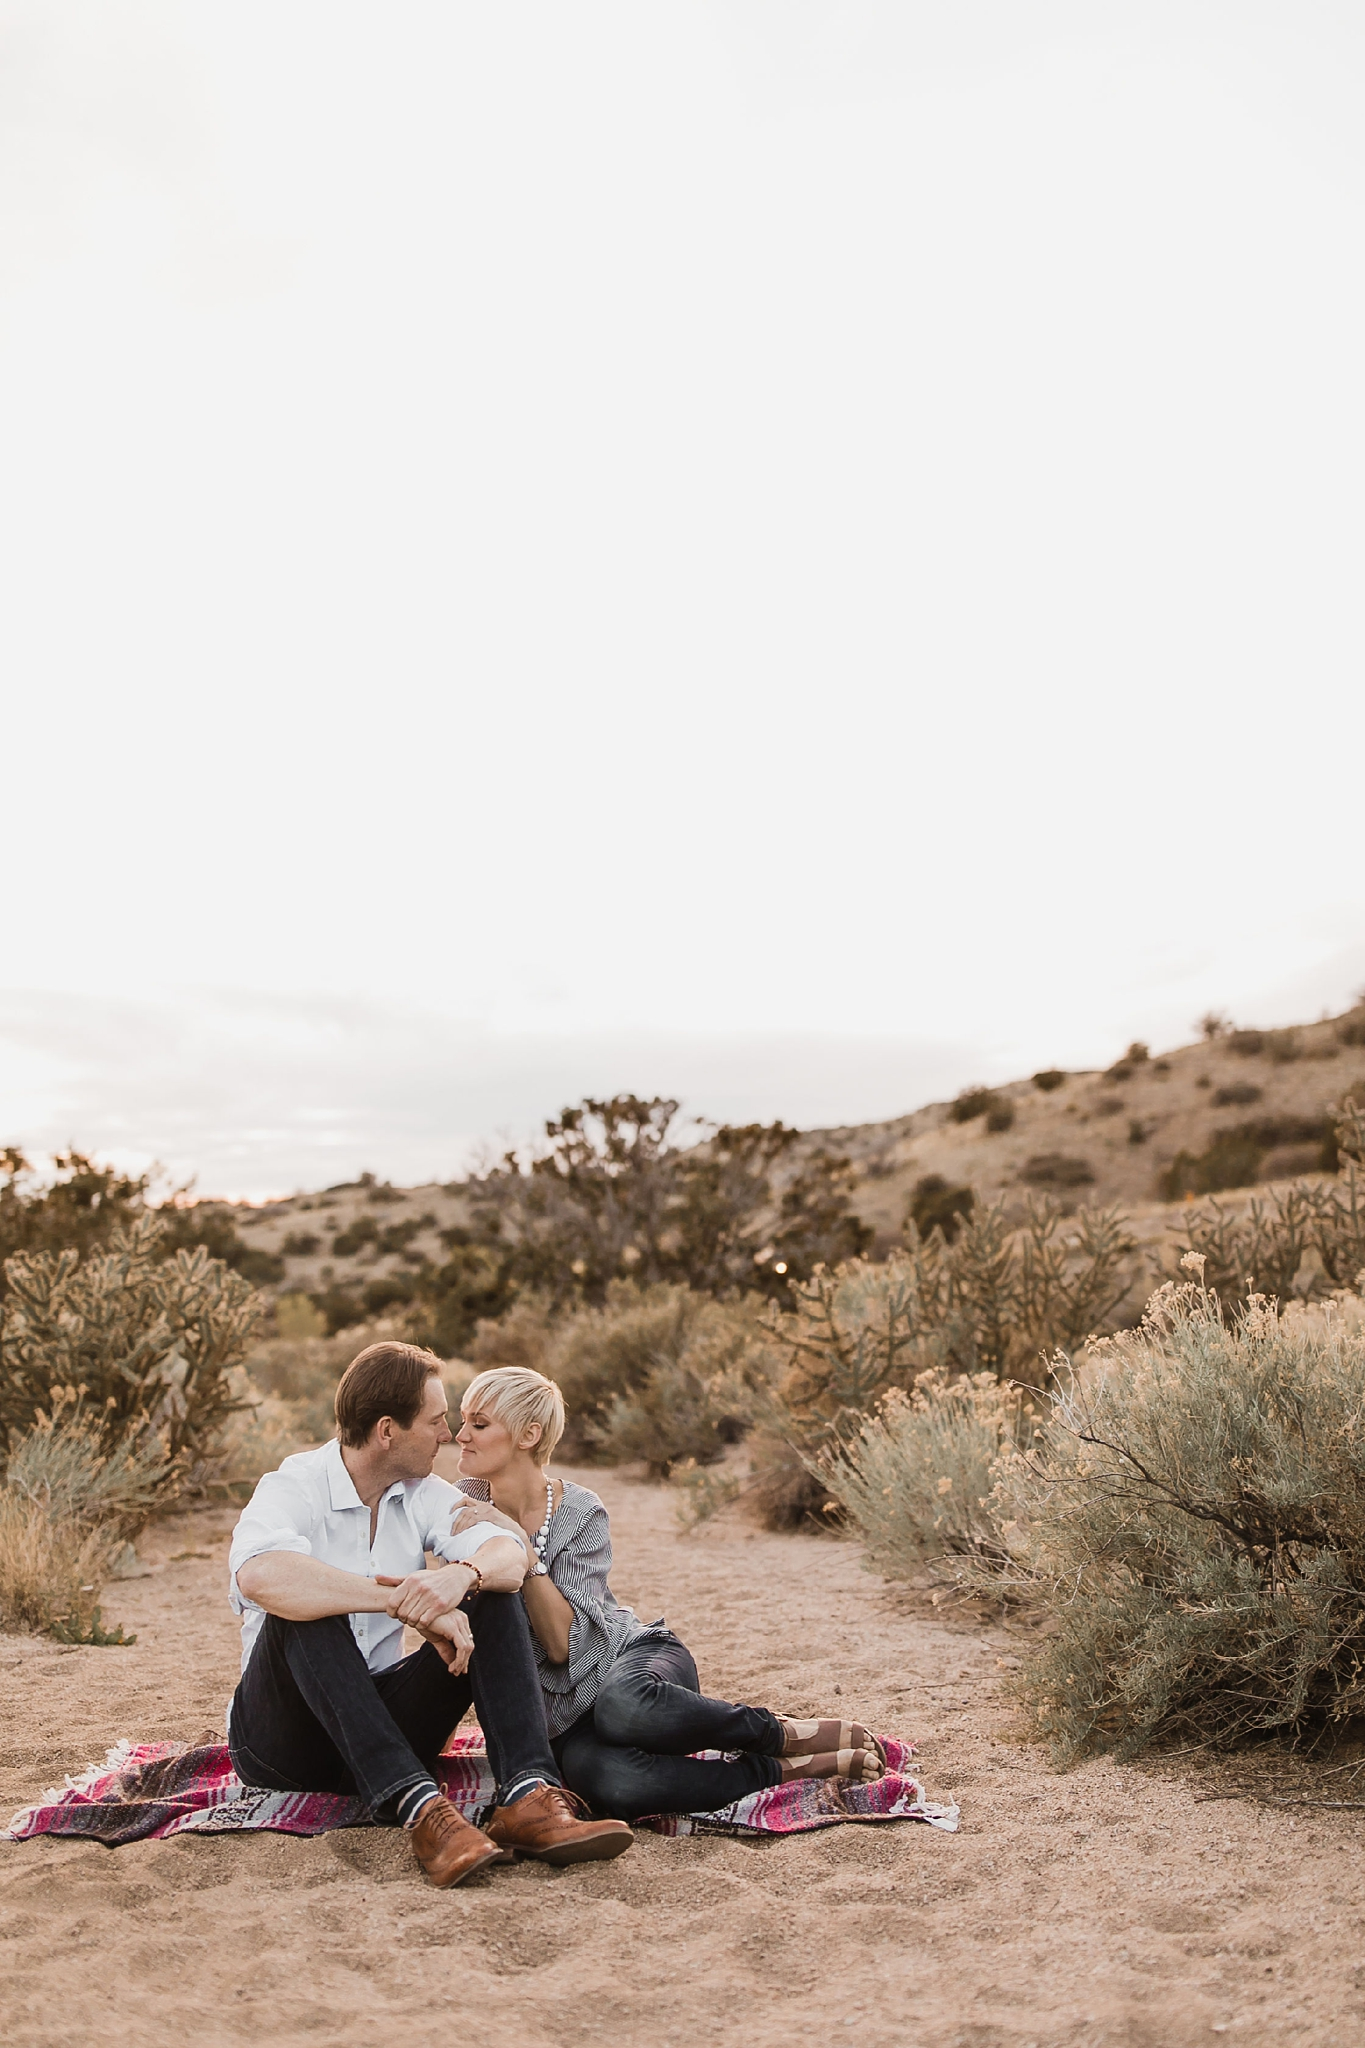 Alicia+lucia+photography+-+albuquerque+wedding+photographer+-+santa+fe+wedding+photography+-+new+mexico+wedding+photographer+-+new+mexico+wedding+-+engagement+-+engagement+photography+-+new+mexico+engagement+-+desert+engagement_0009.jpg